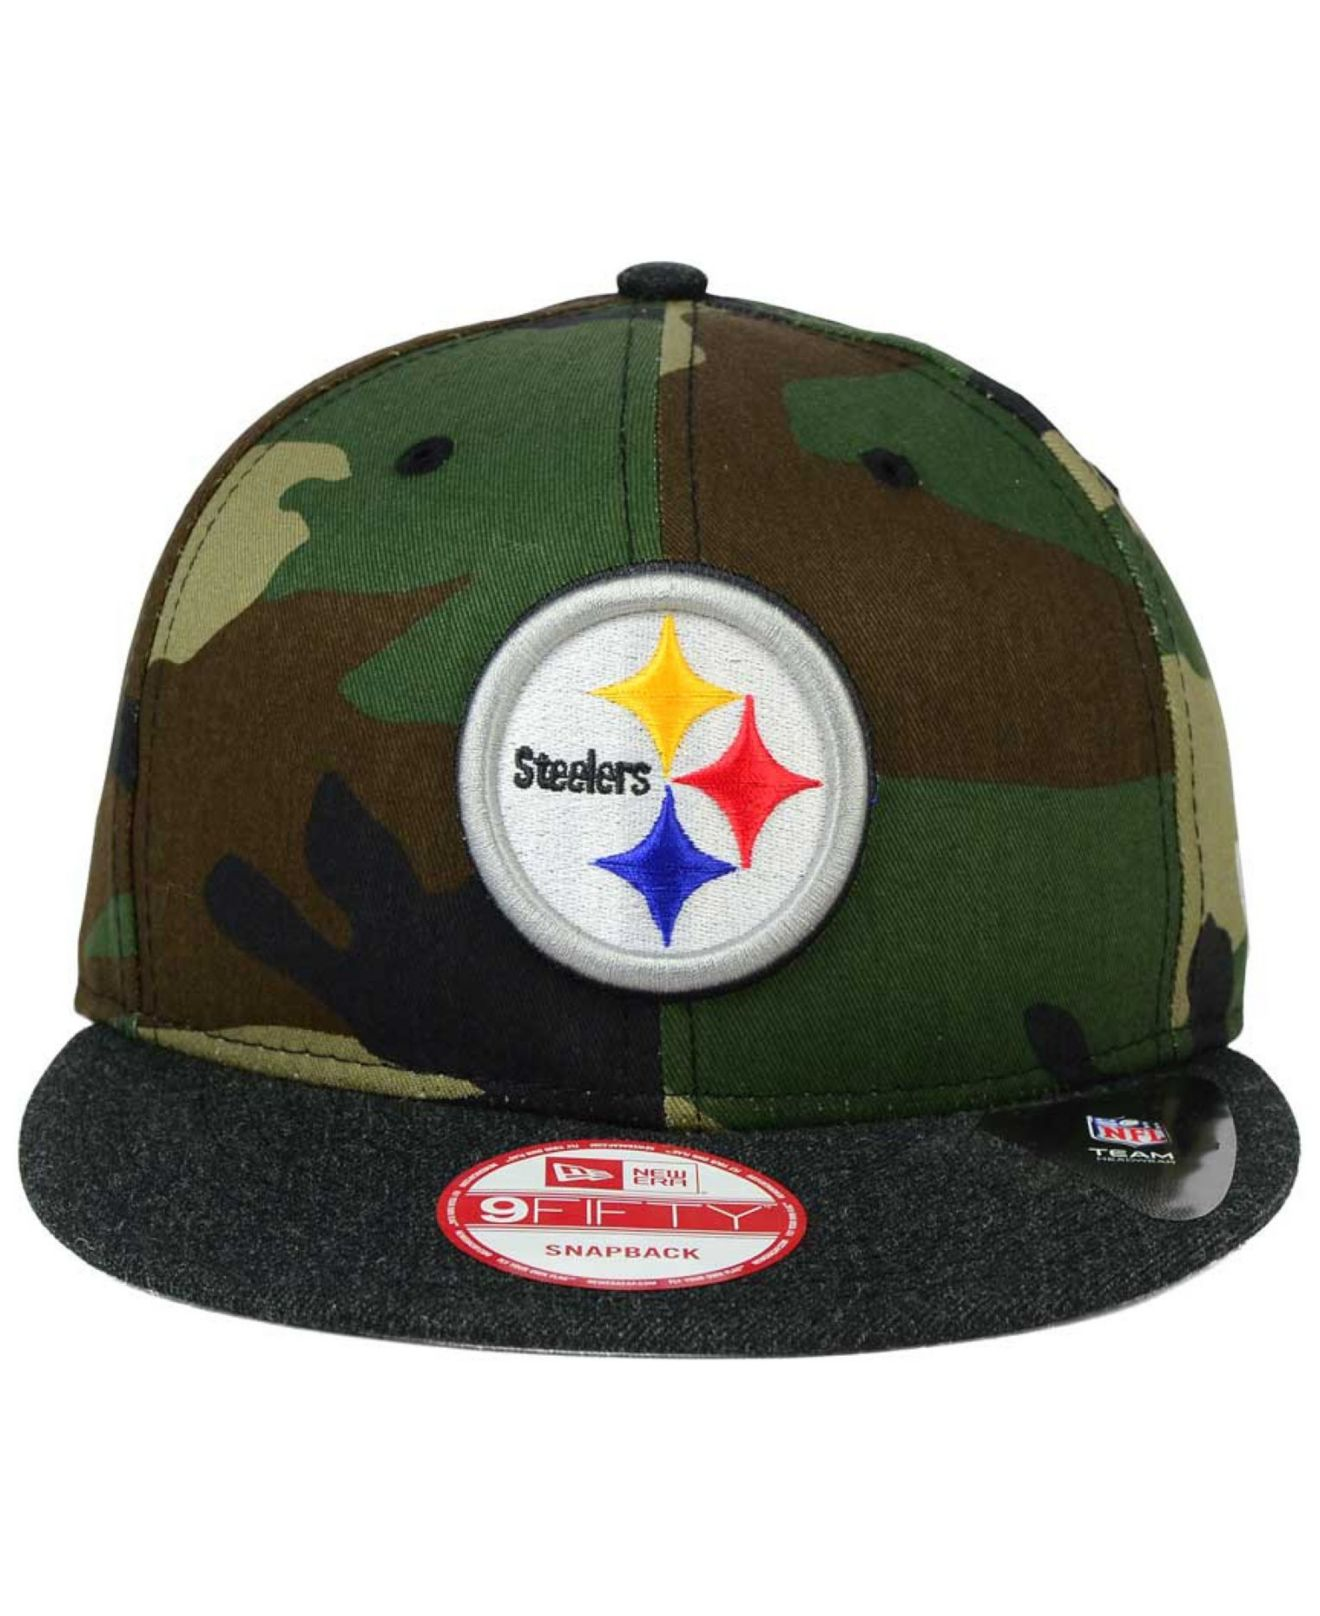 timeless design 4eec1 1f0f7 ... order lyst ktz pittsburgh steelers camo heather 9fifty snapback cap in  7936c 6ba90